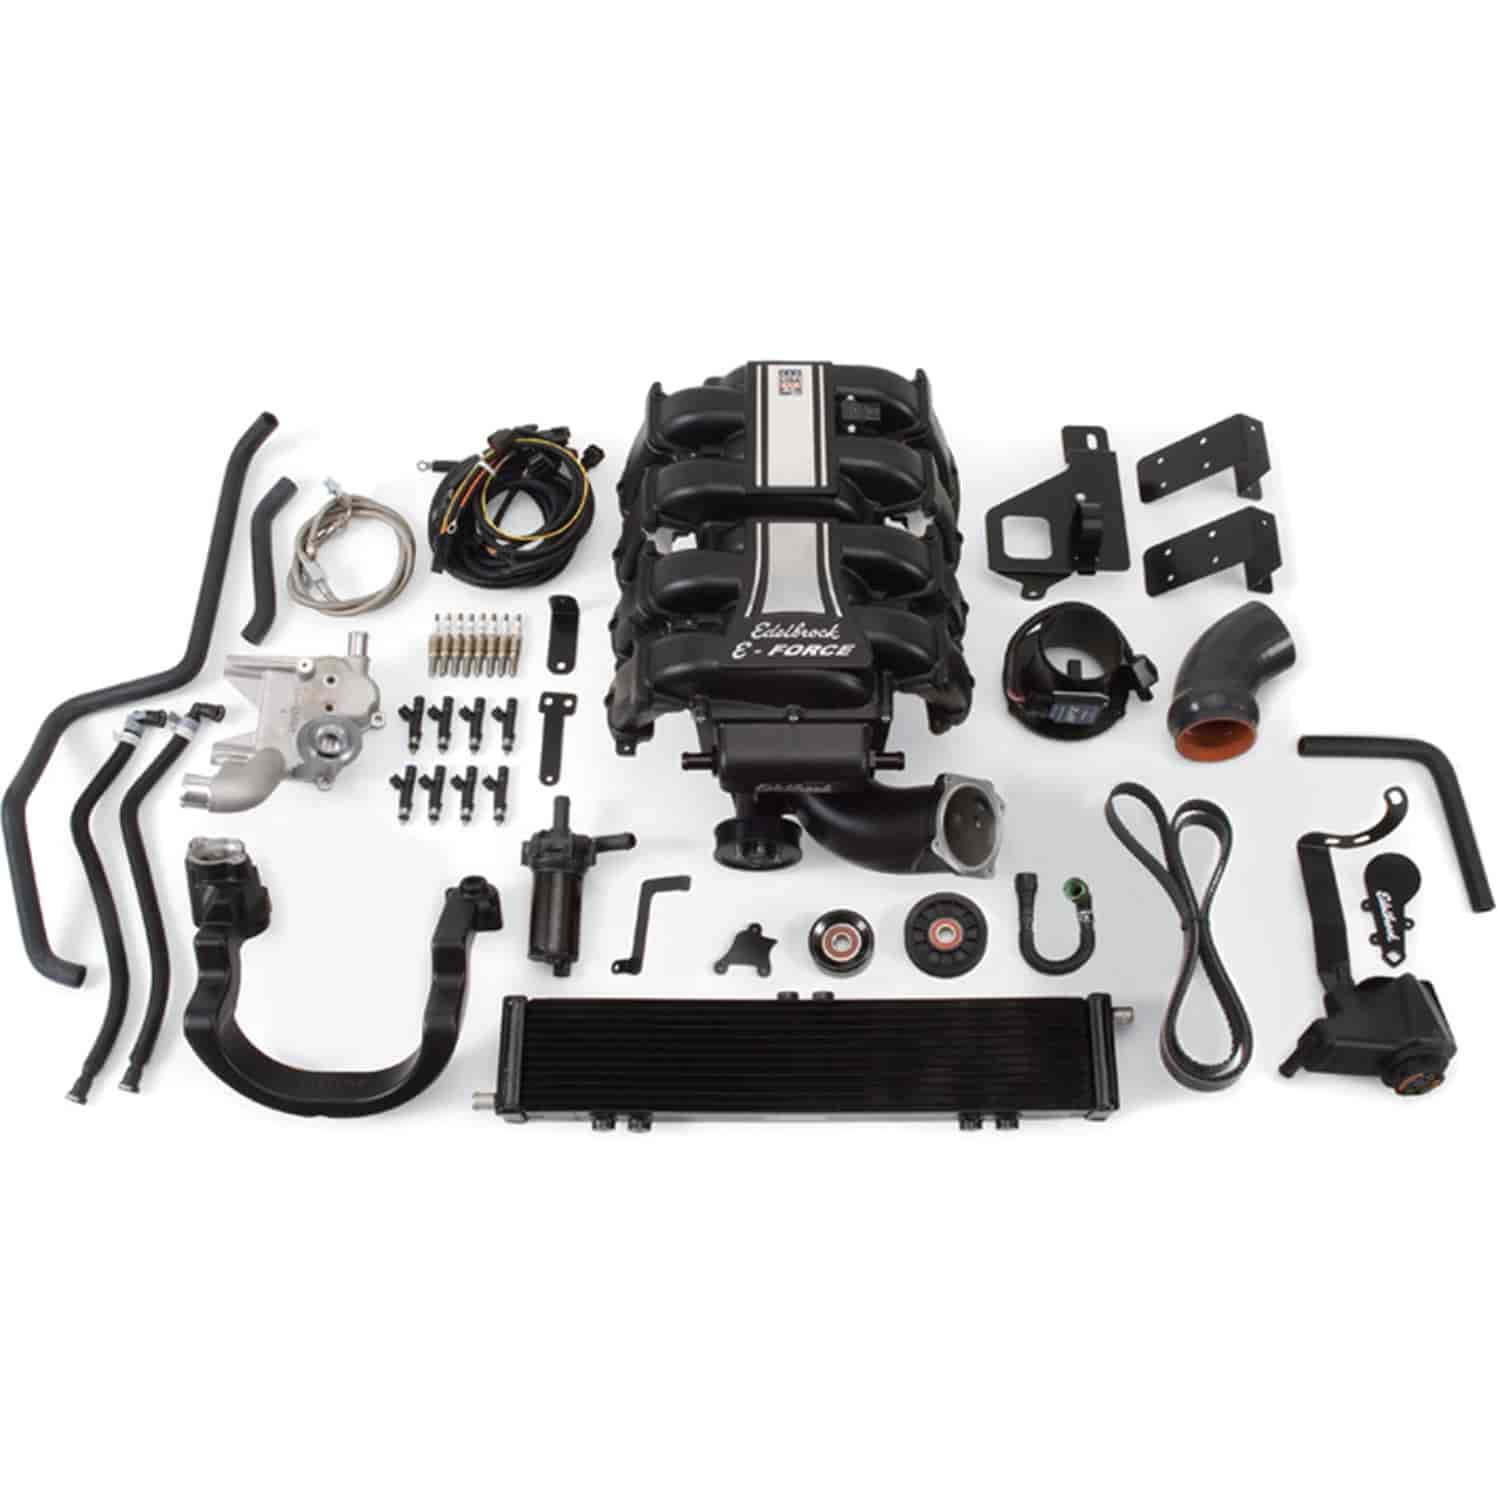 Edelbrock 15830 - Edelbrock E-Force Supercharger Kits for Ford F-150